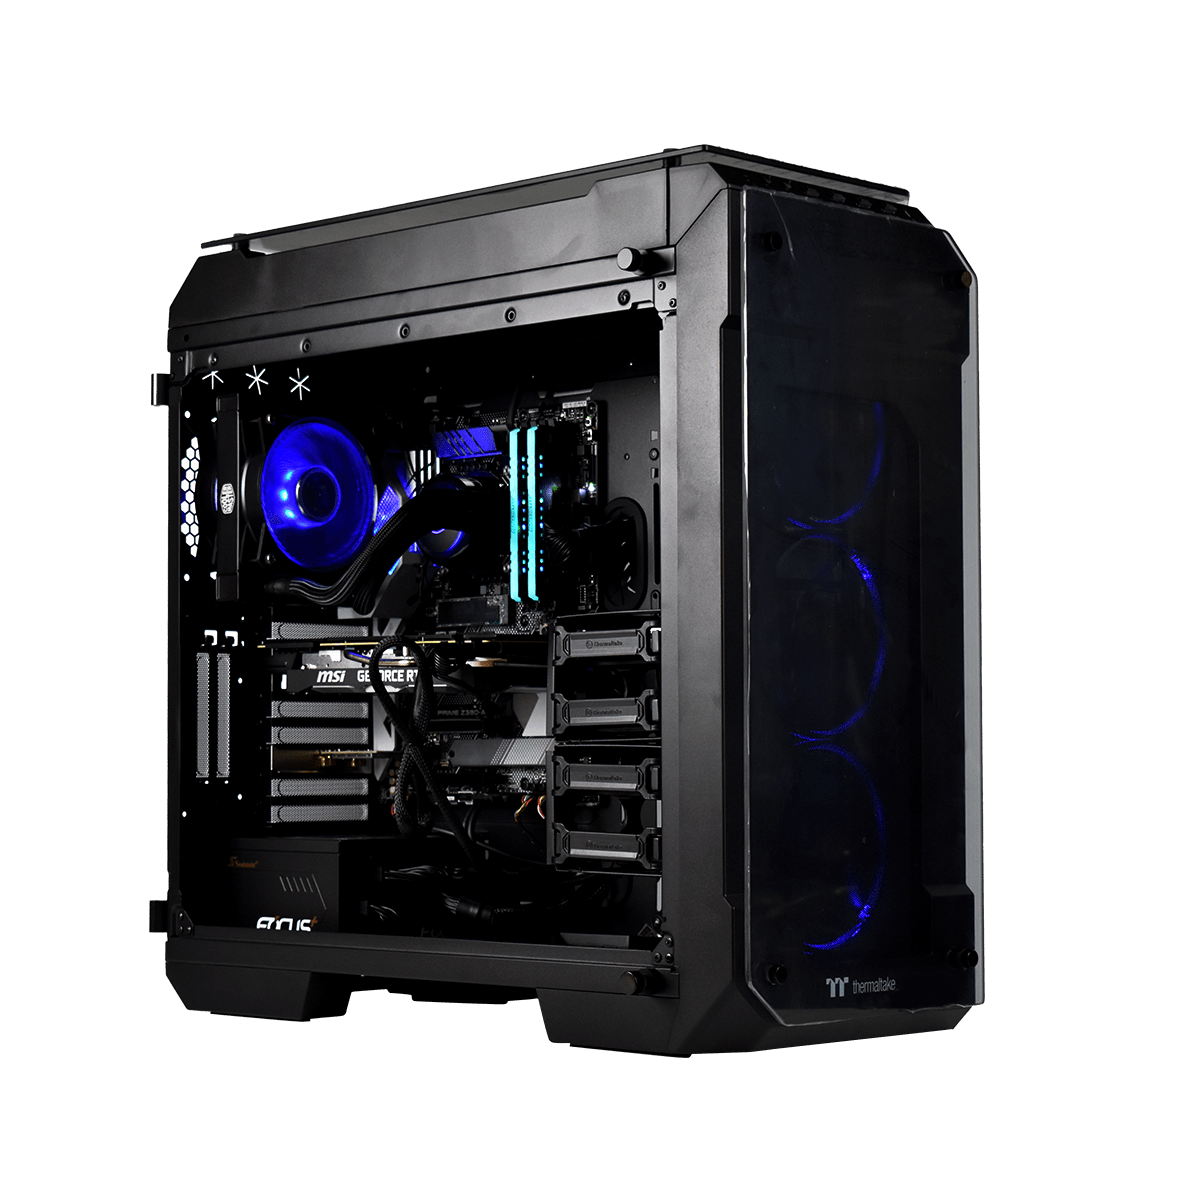 PC Gamer Cybertek QUETZAL Processeur Intel Core i7 8700K - Ballistix 32Go DDR4 - MSI nVidia GF RTX 2080 Super 8Go - Crucial SSD 500Go - 4To HDD - Wifi- Windows 10